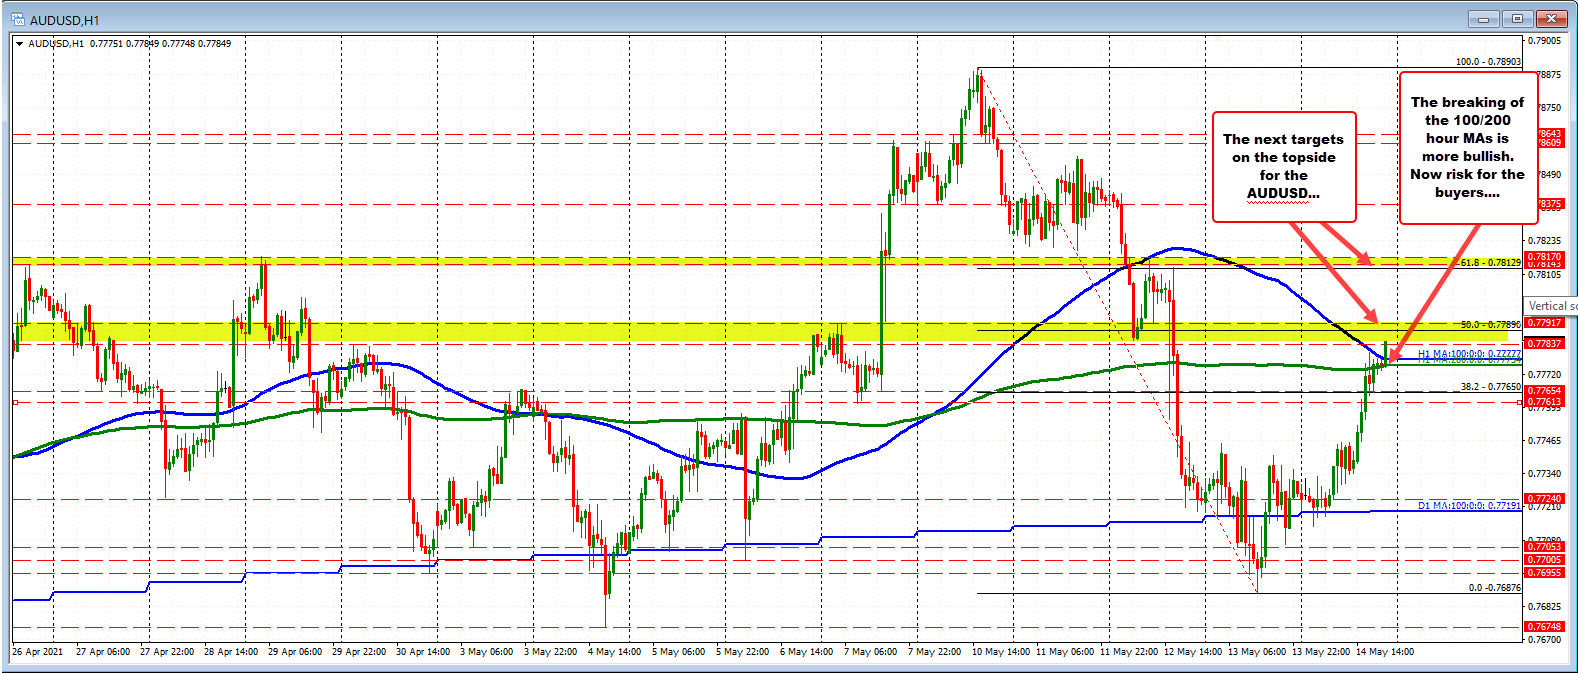 AUDUSD moves above 100/200 hour MA as risk on continues